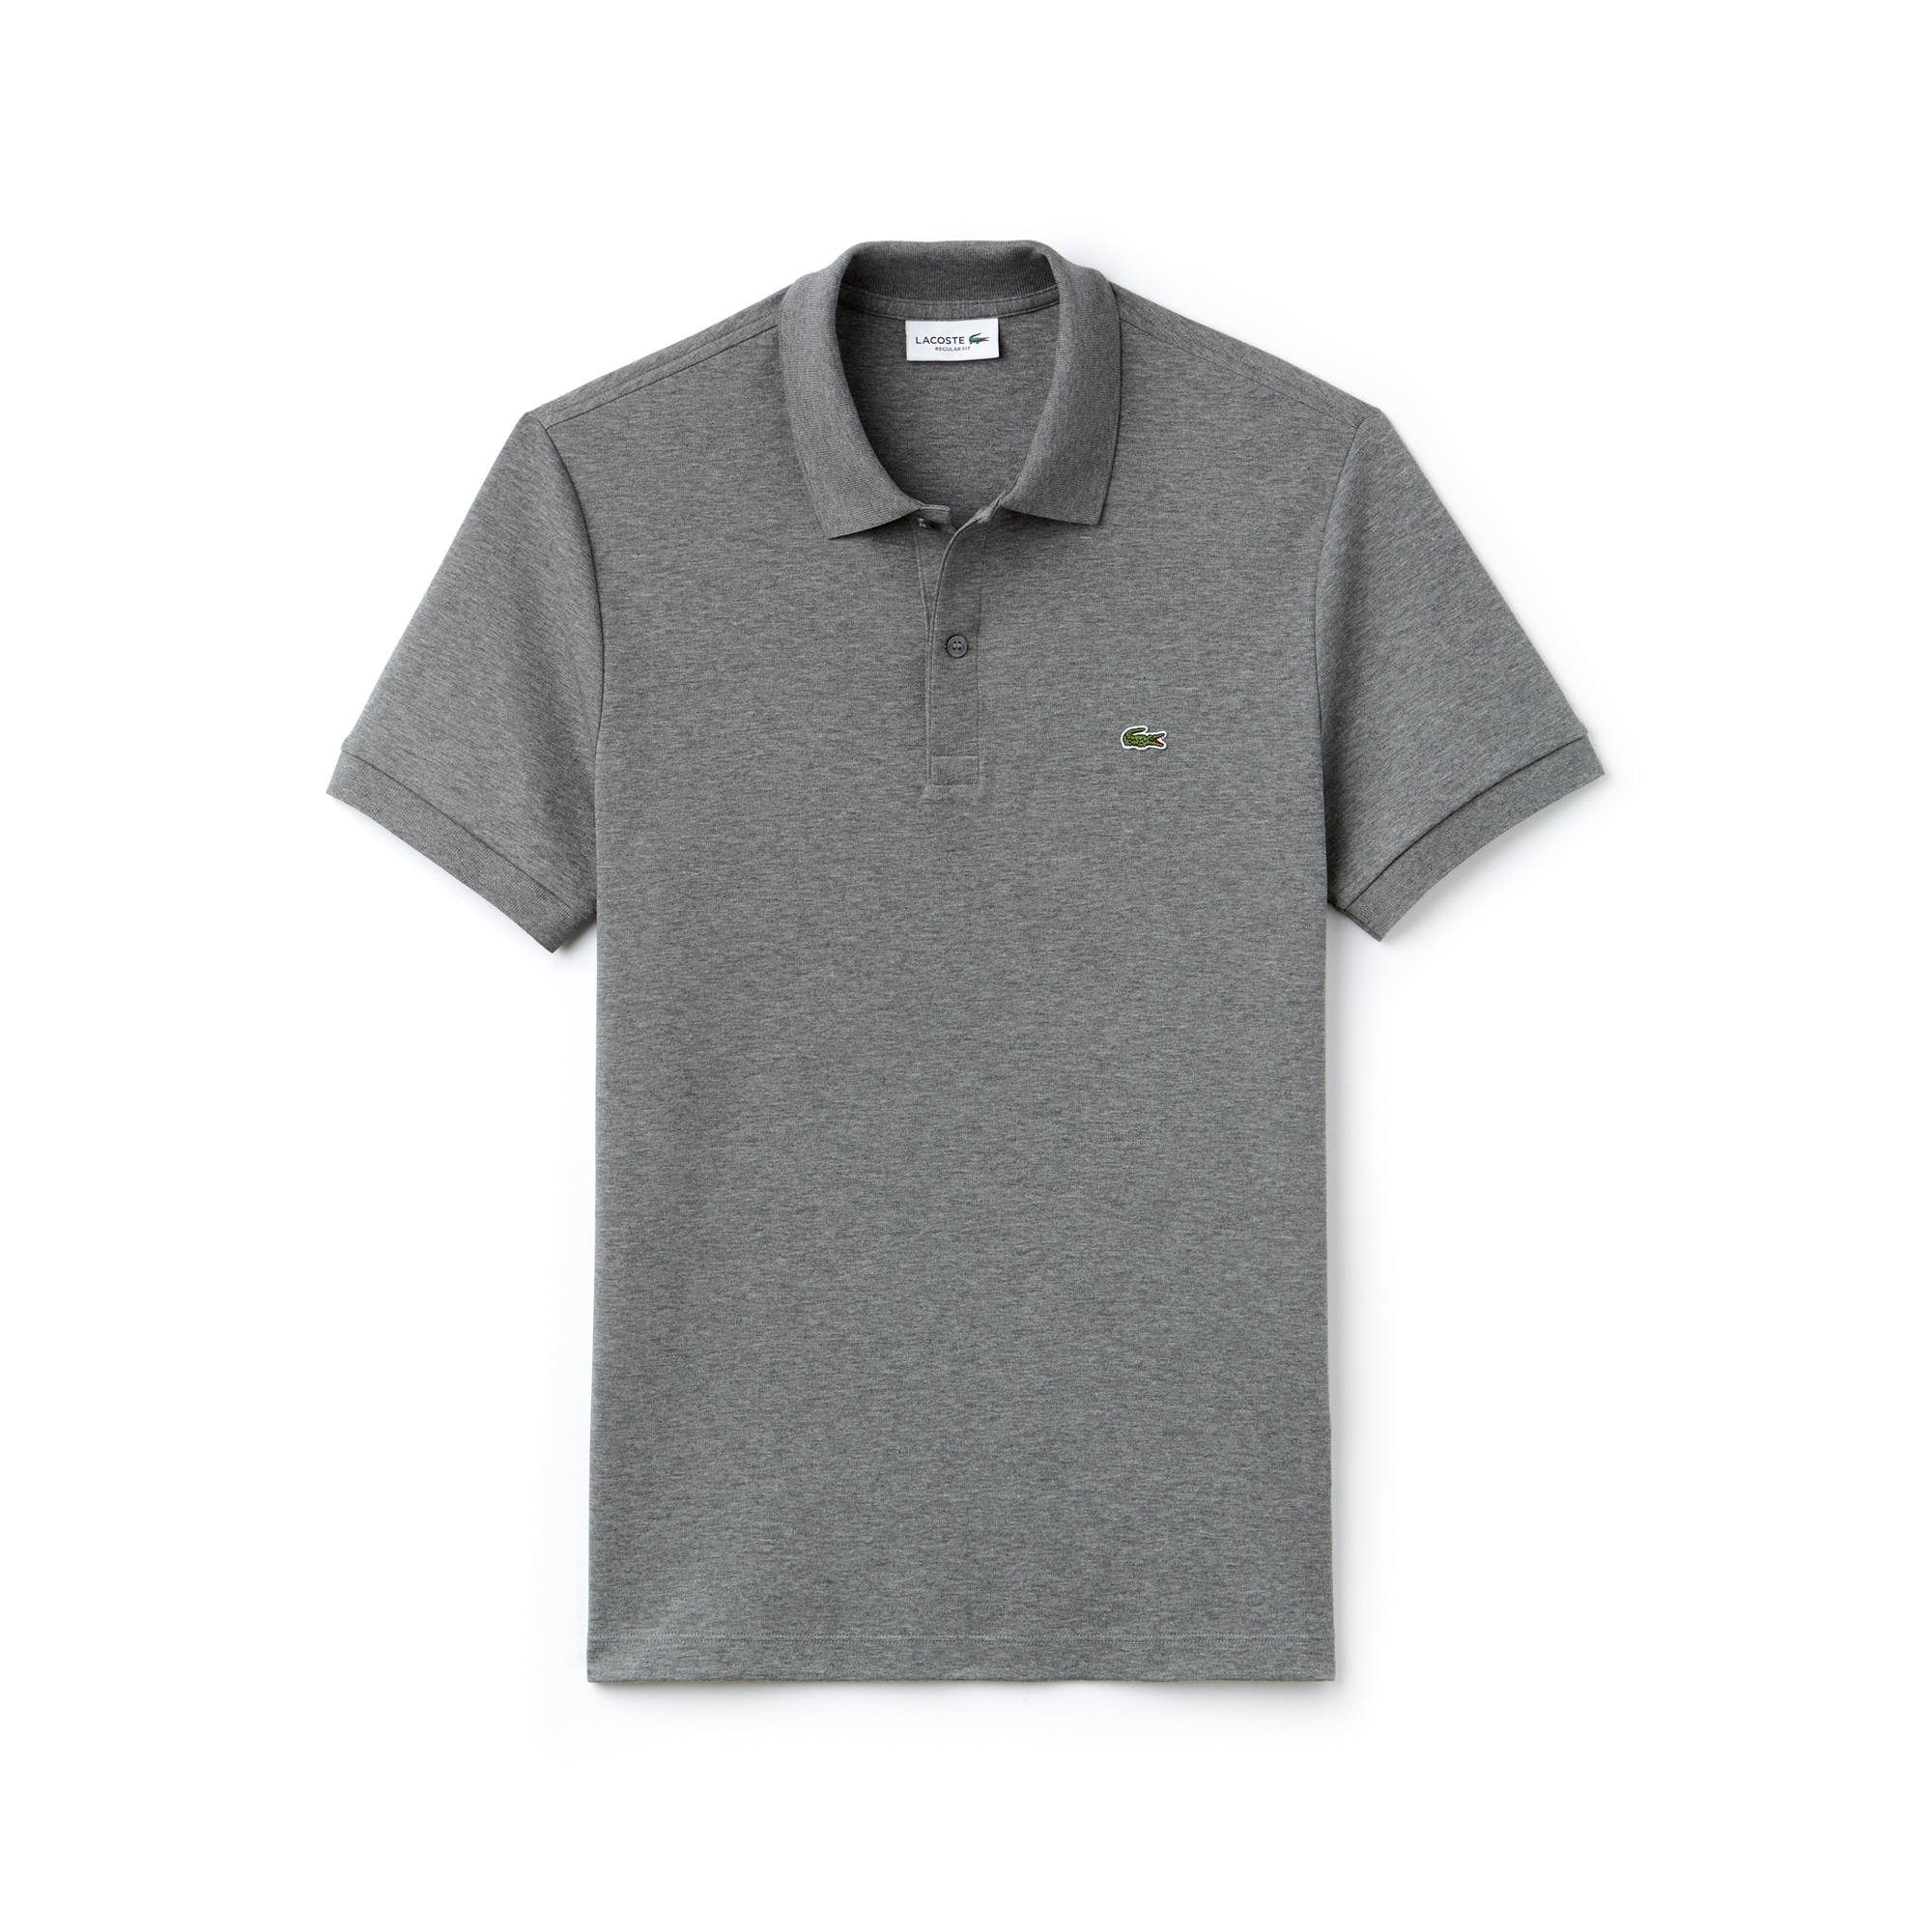 New arrivals lacoste men 39 s fashion new products for Boys lacoste polo shirt